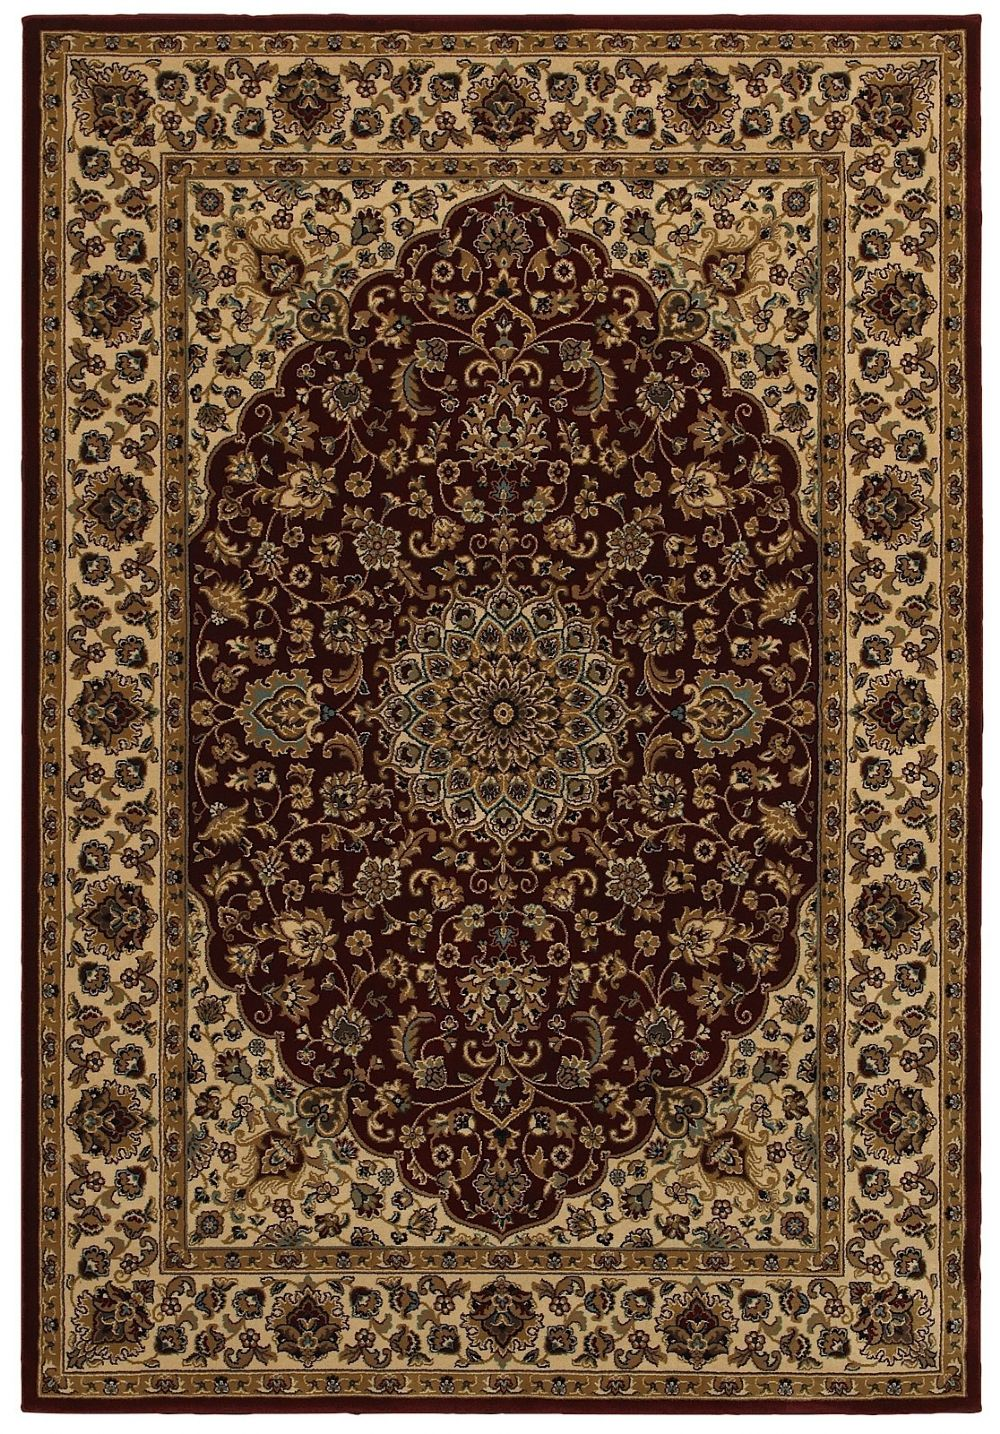 rizzy rugs chateau european area rug collection